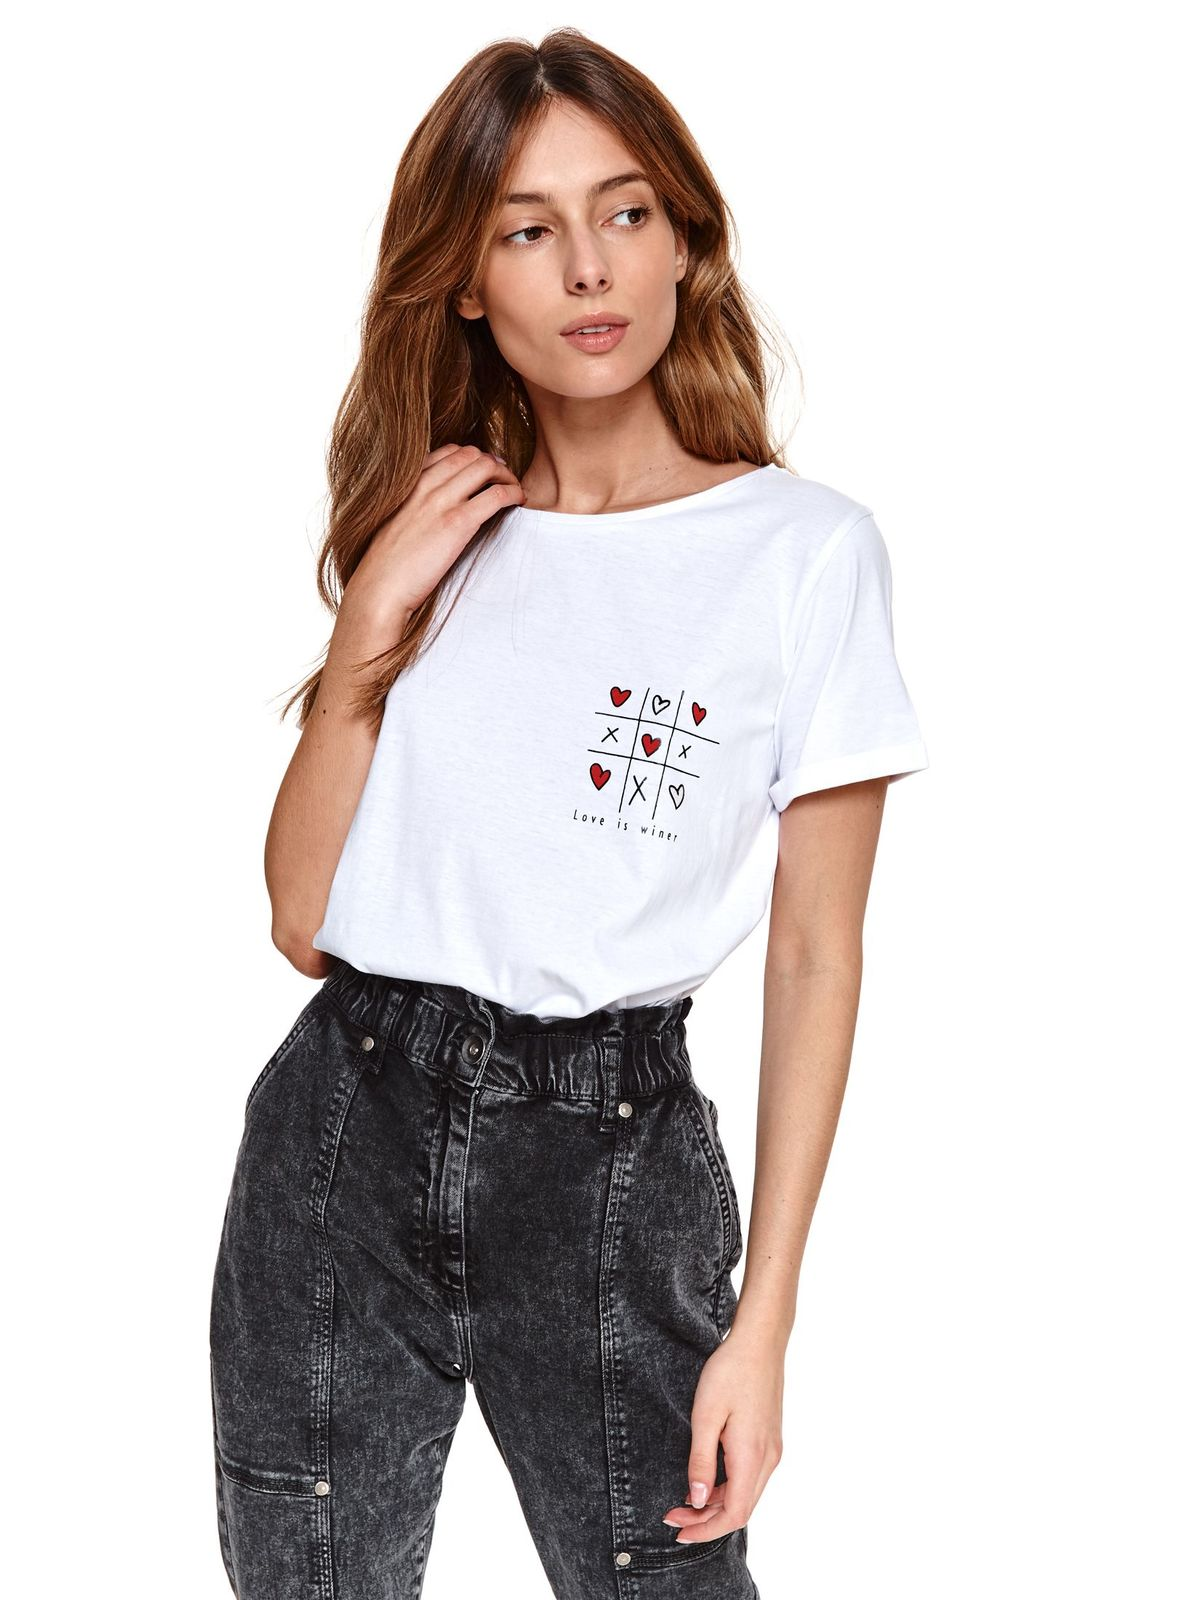 White t-shirt with graphic details loose fit cotton